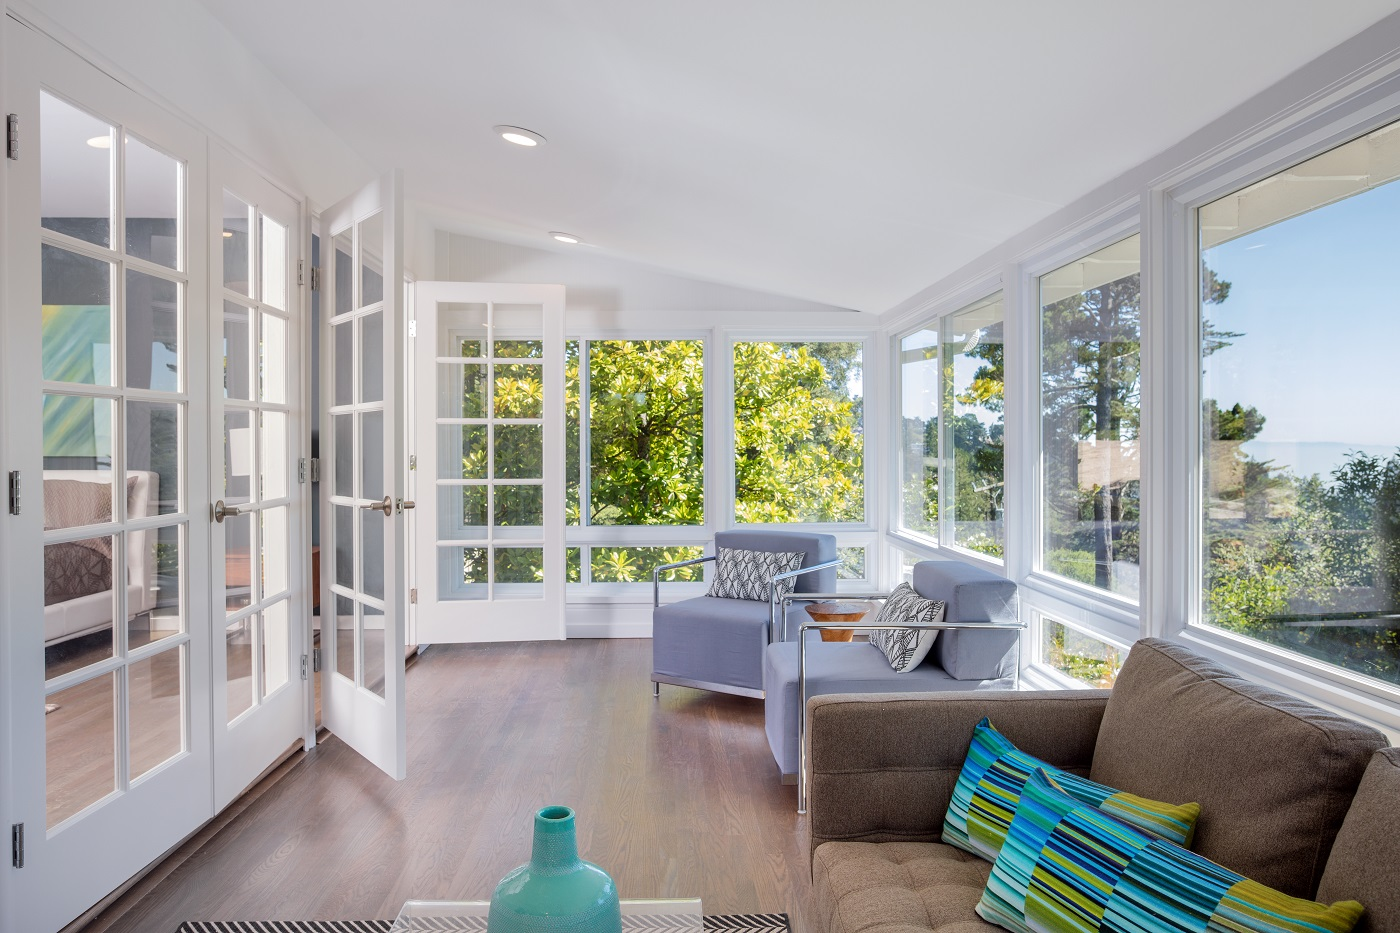 Your-sunroom-will-be-an-extension-of-your-home